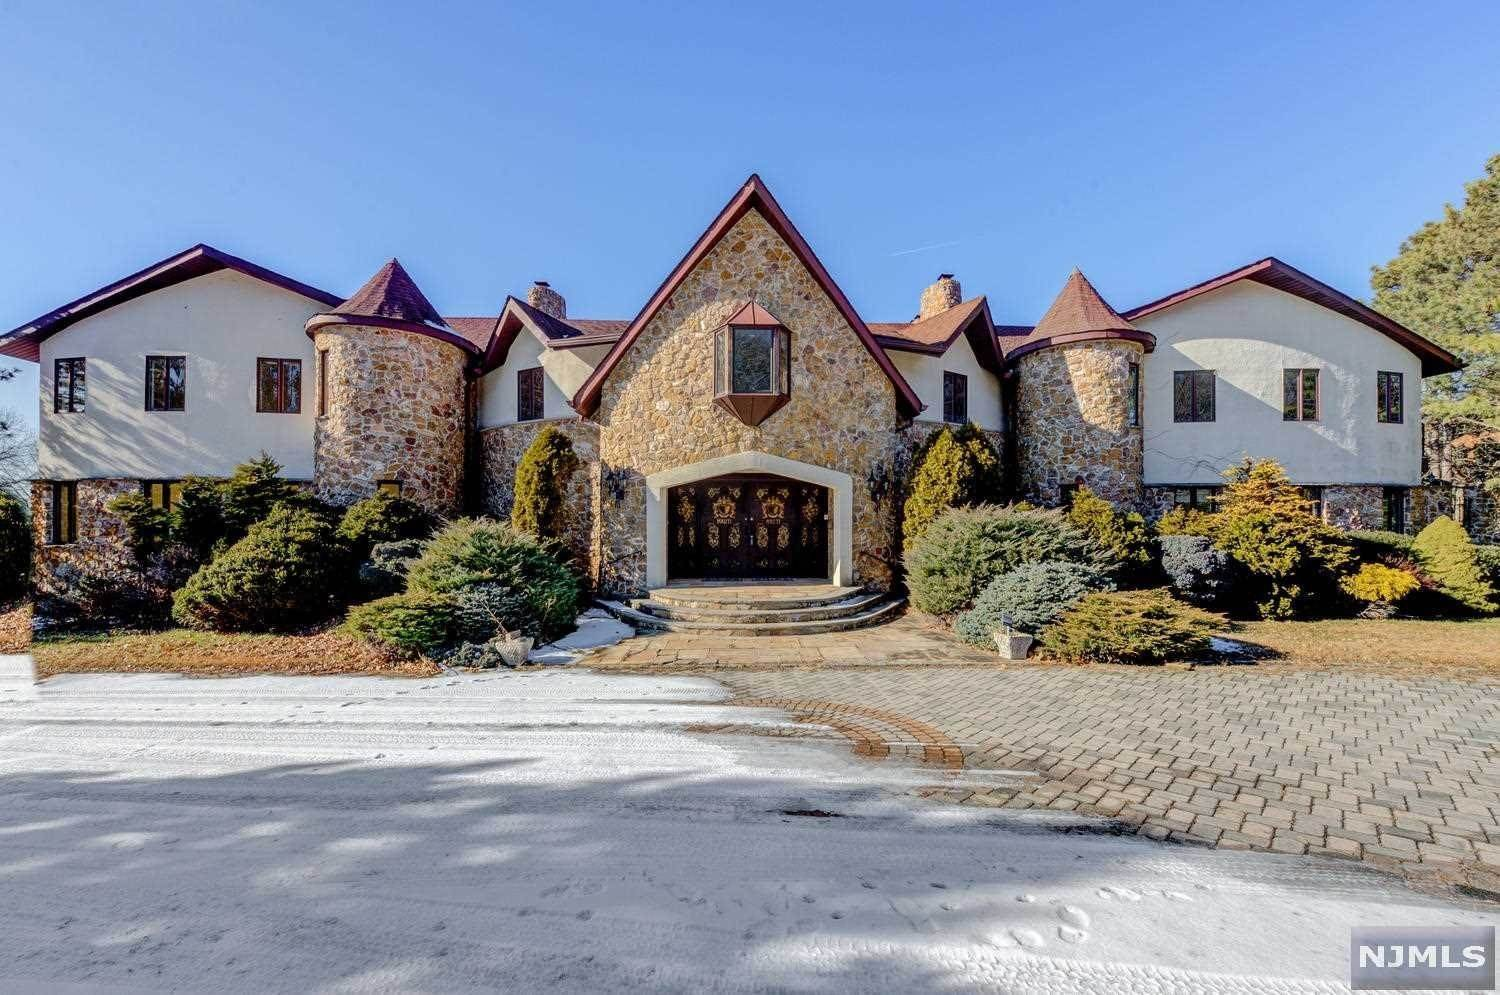 Single Family Home for Sale at 10 Notch Hill Drive Livingston, New Jersey,07039 United States